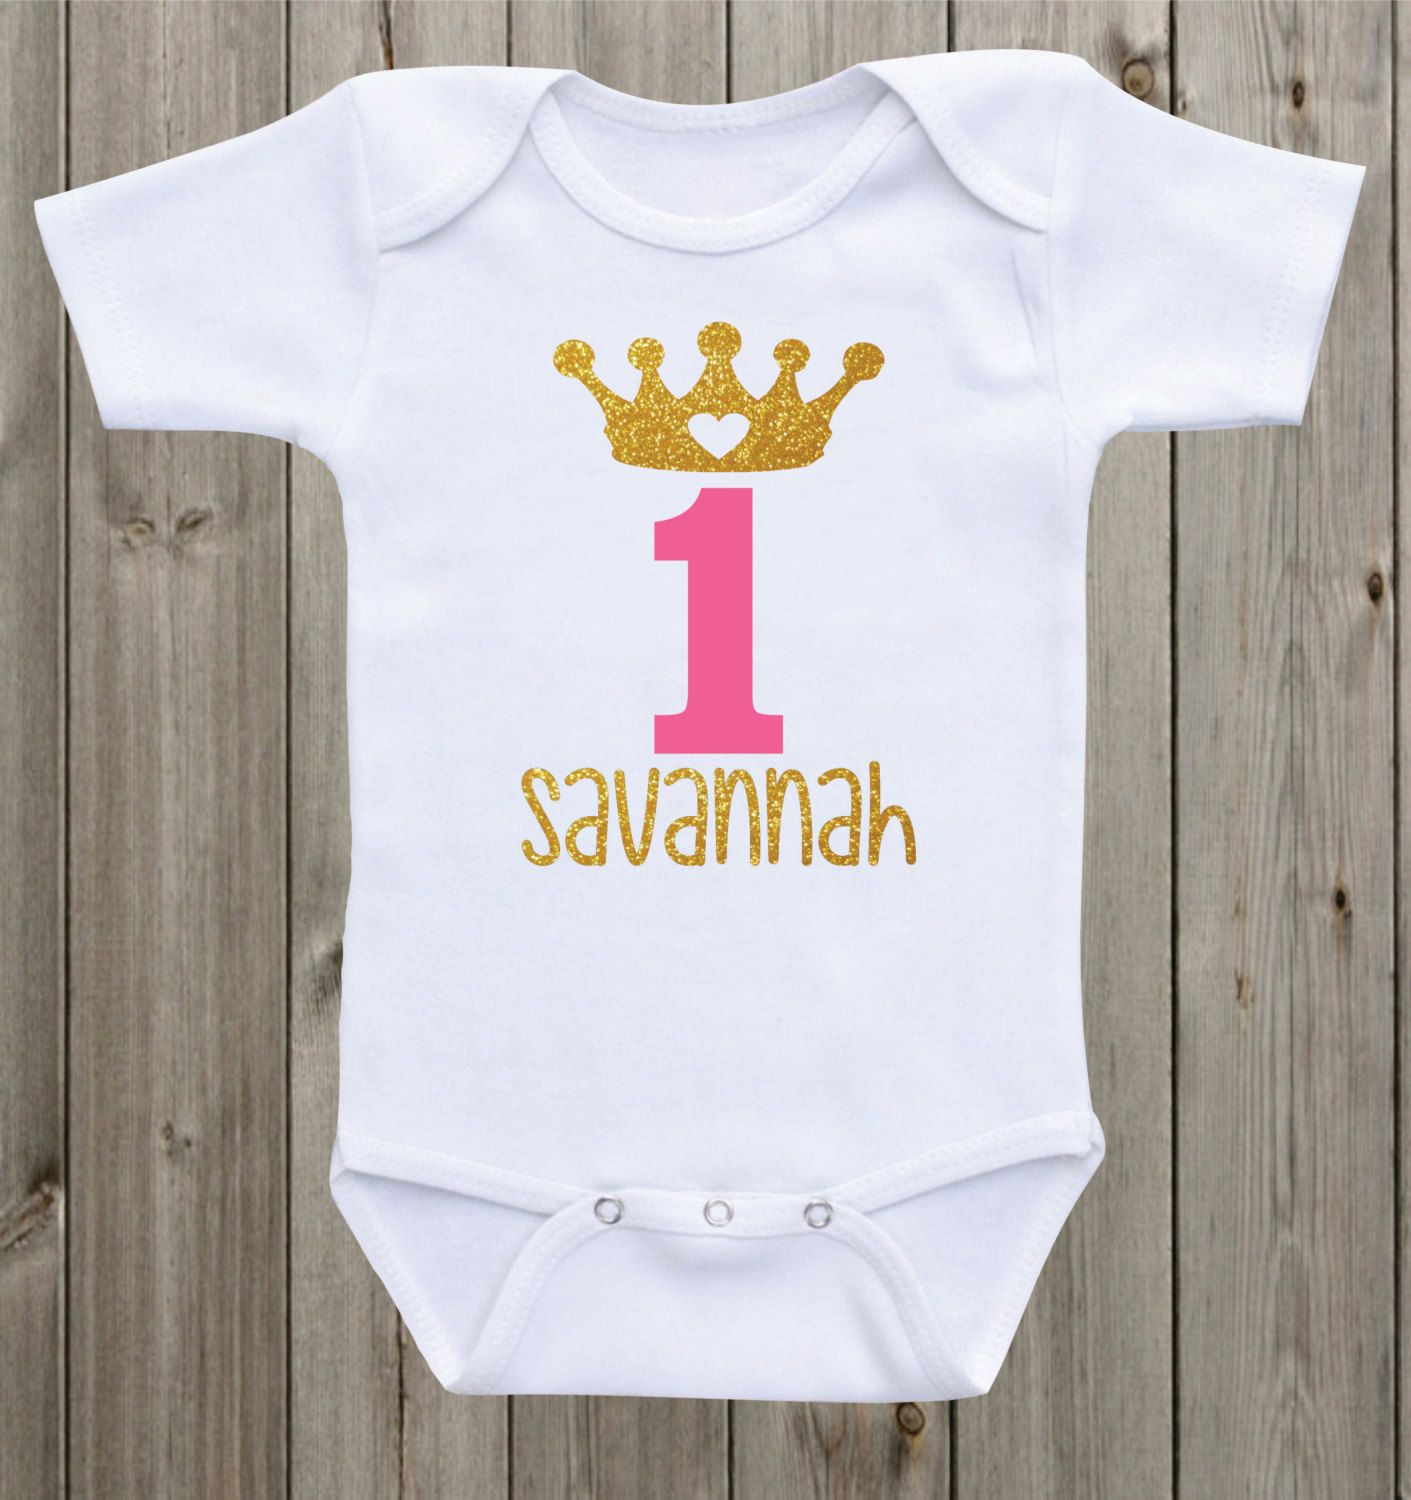 e year old princess Personalized baby girl outfit Baby s first